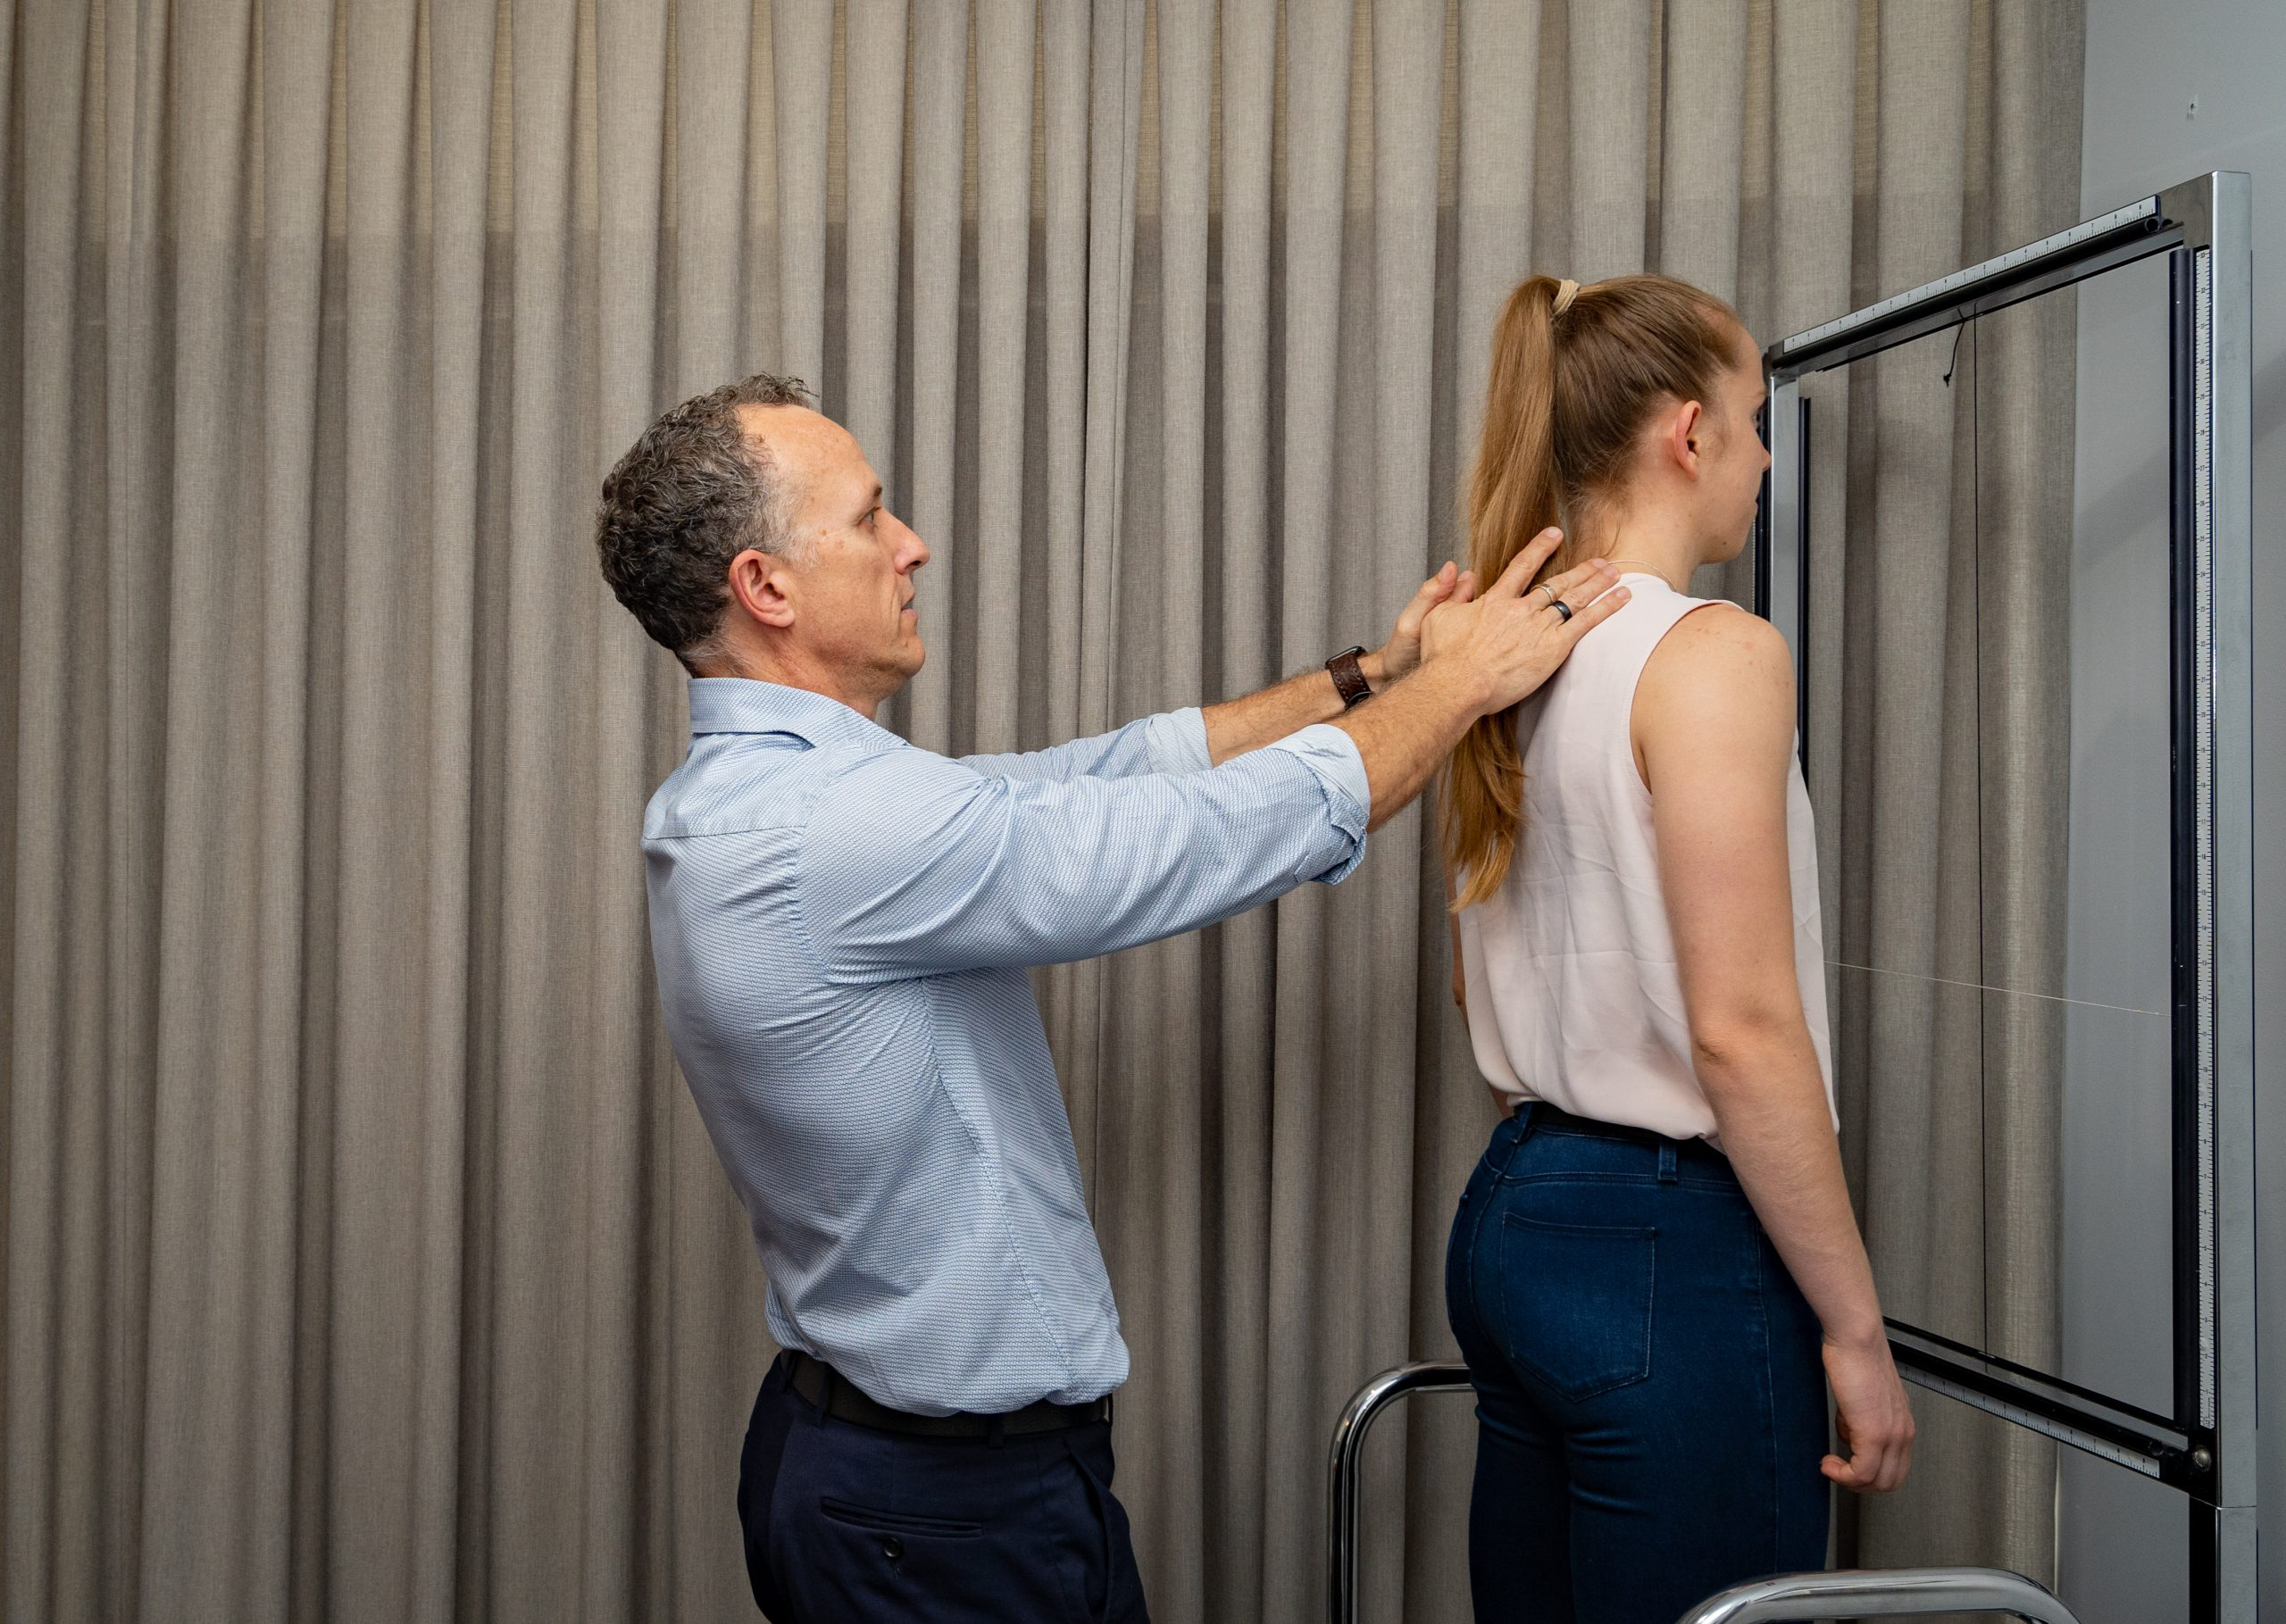 Chiropractor conducting postural analysis on a patient